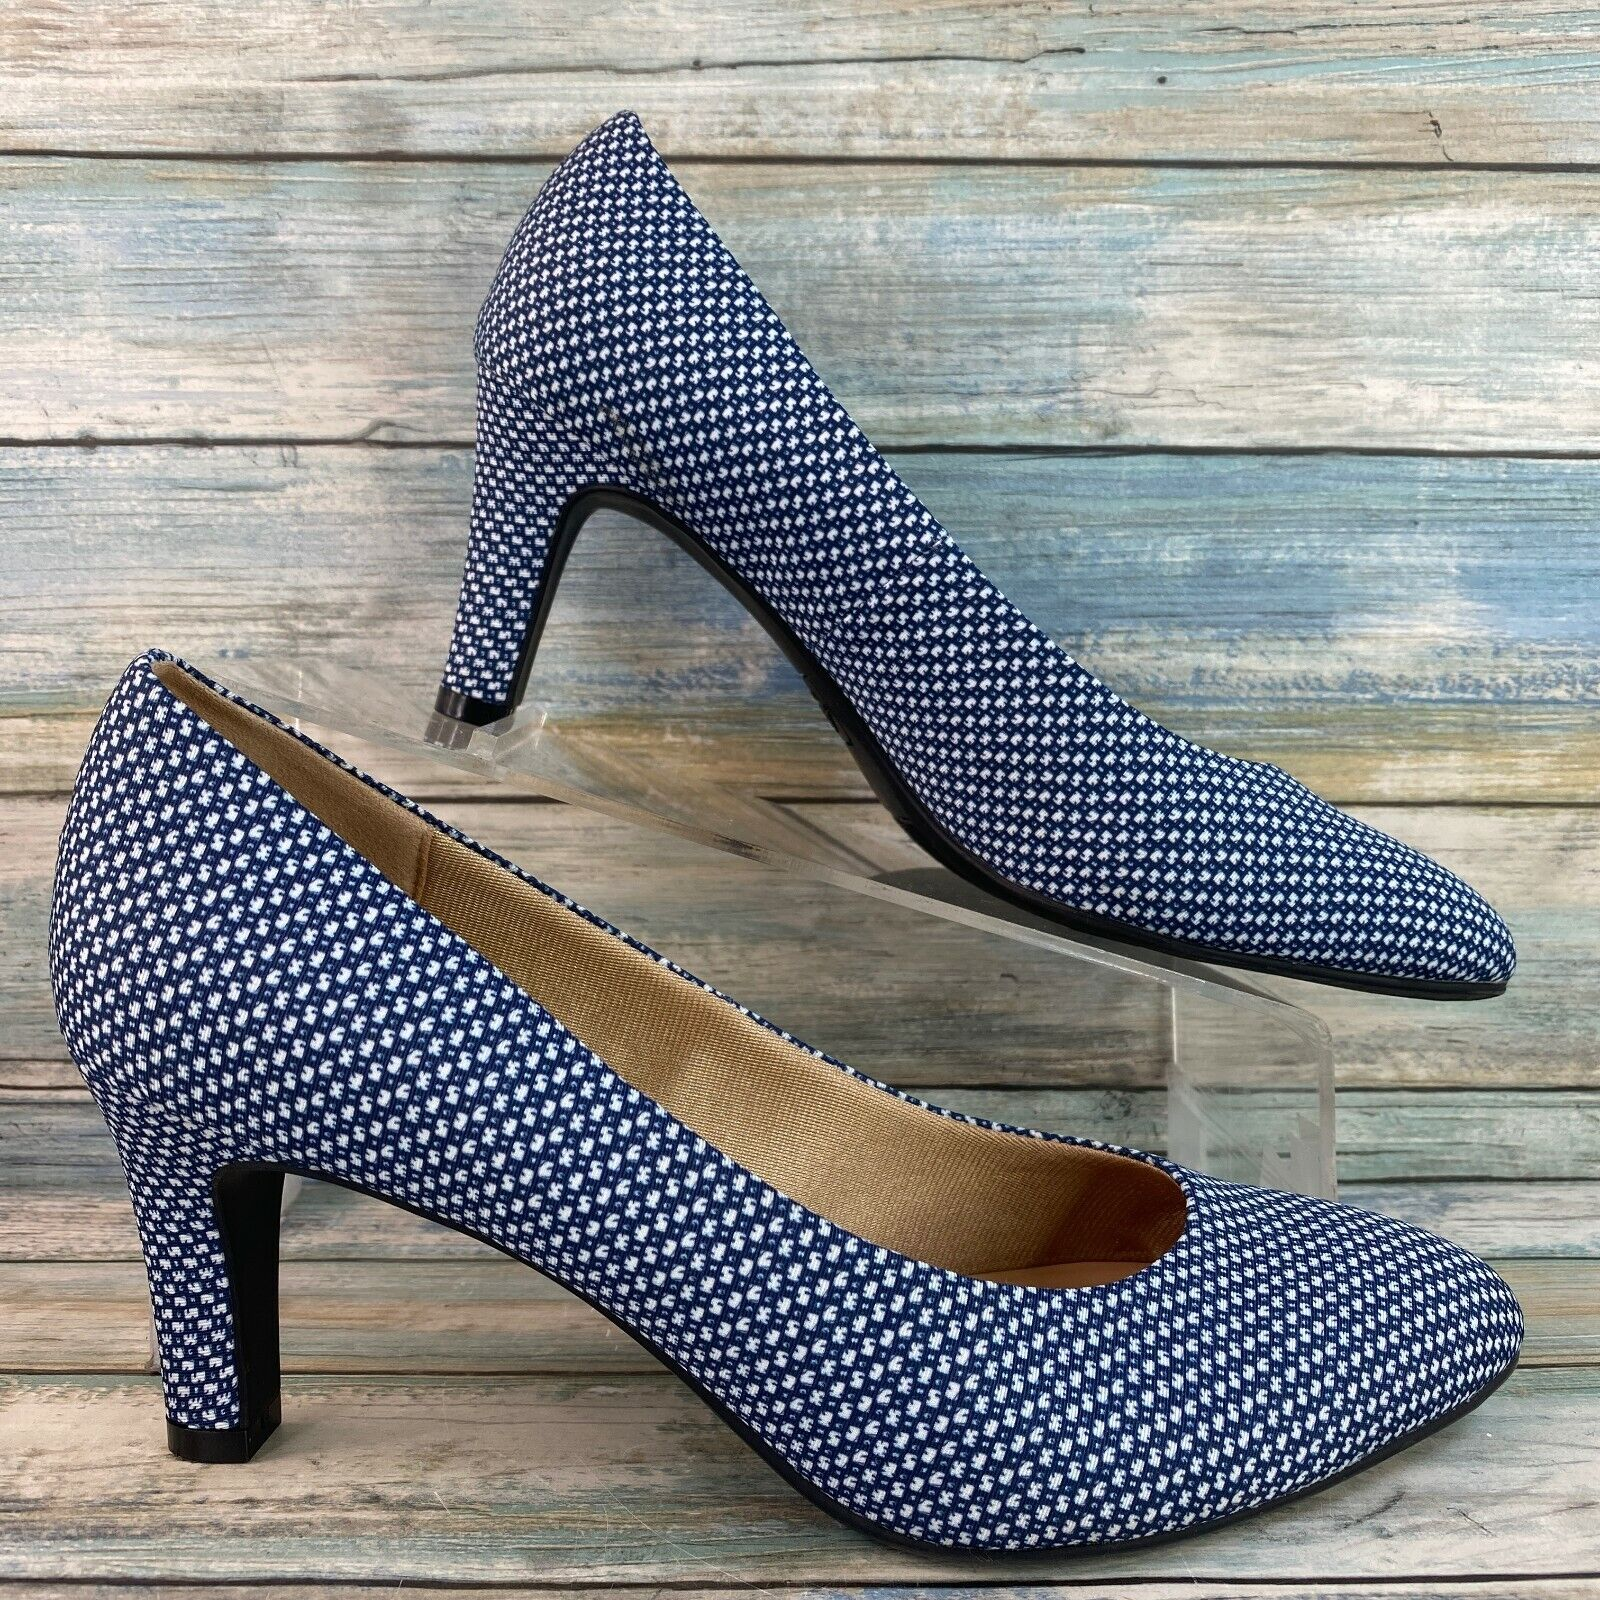 Abella Galaxy Womens Pumps Blue White Fabric Uppers Almond Toe Size 8.5M